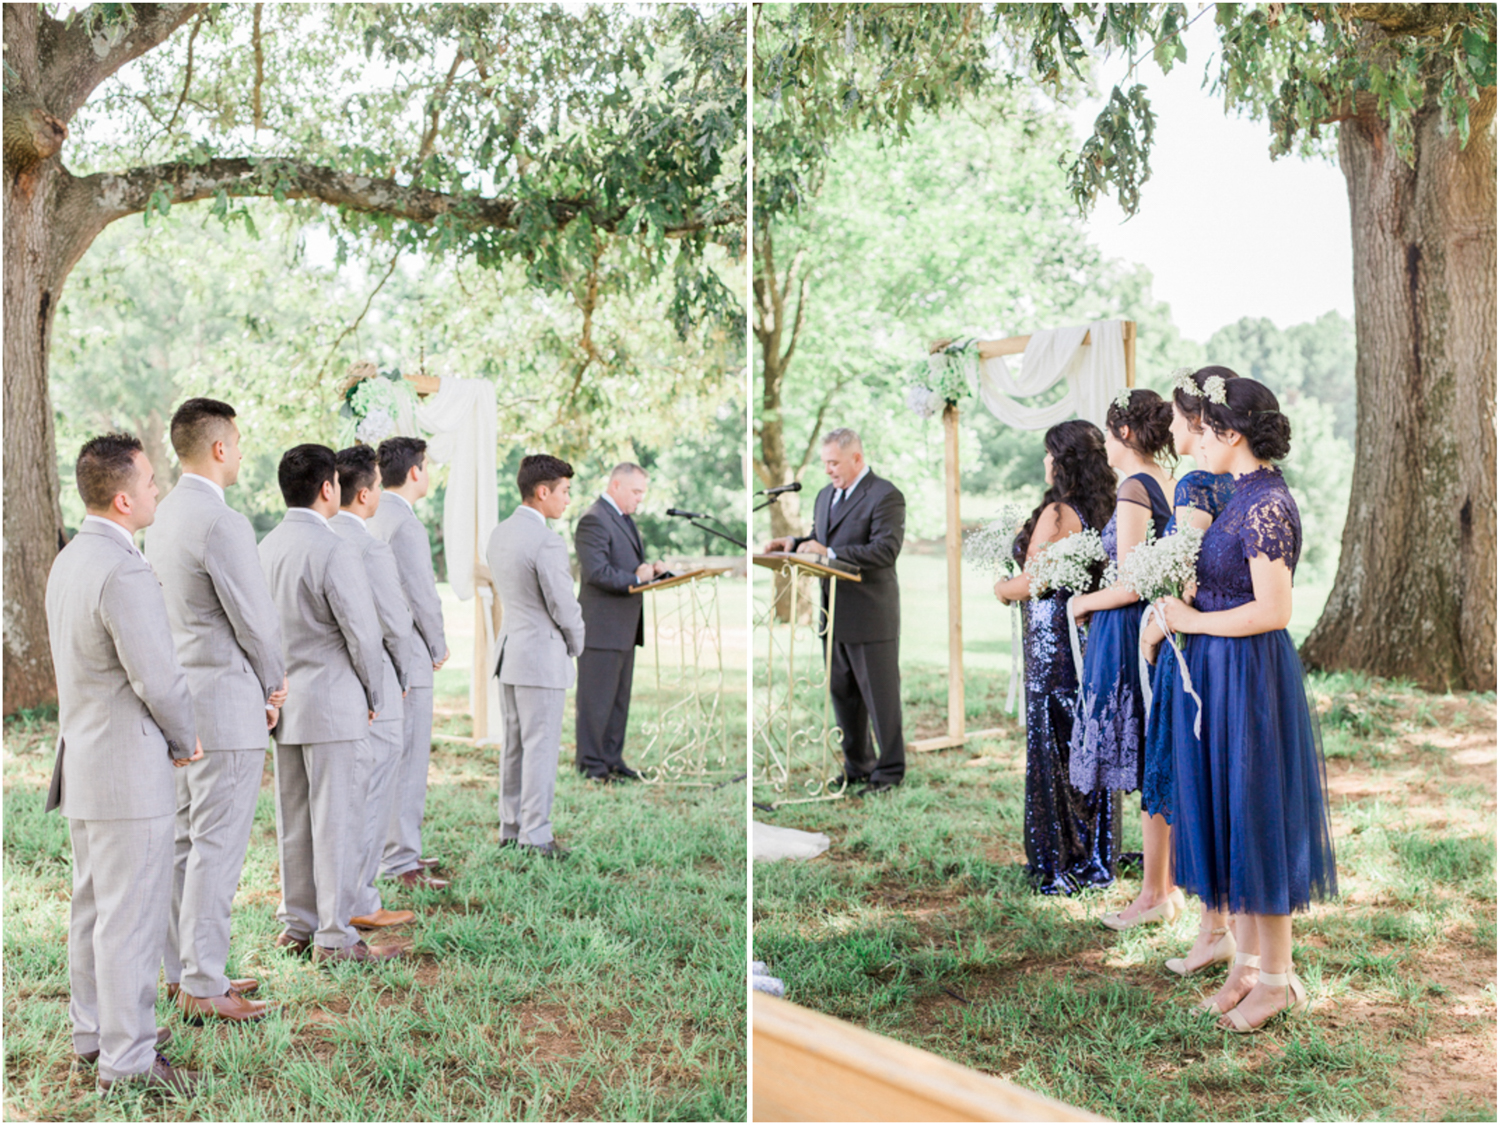 Groomsmen and bridesmaids, wedding party, during outdoor wedding ceremony. Summer, outdoor, barn wedding in north Georgia at Hays McDonald Farm in Jefferson, Georgia. Photo by Kesia Marie Photography- Fine Art Wedding Photographer.